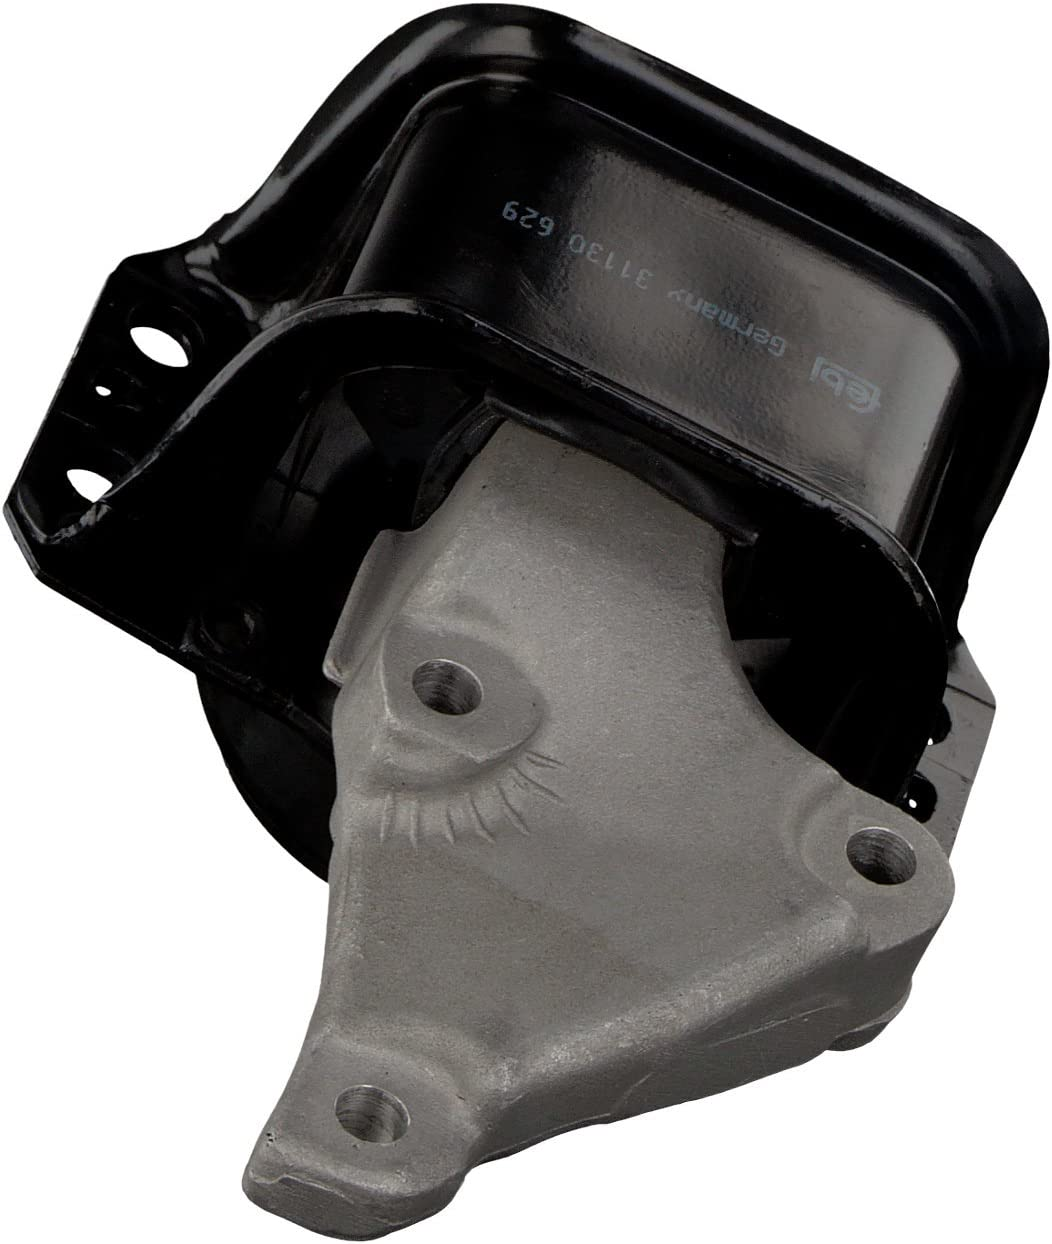 Pack of 1 febi bilstein 02027 engine mounting front right